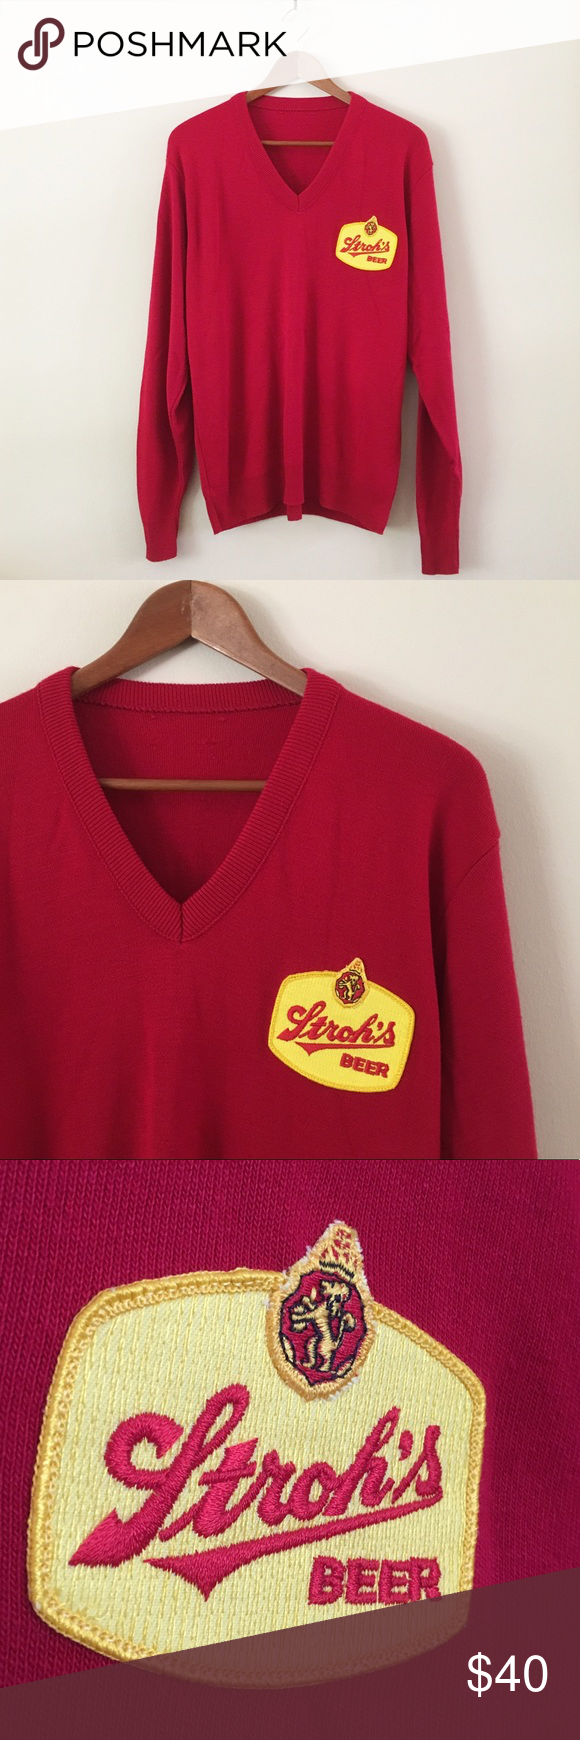 80s / Stroh's Beer Sweater | Red sweaters